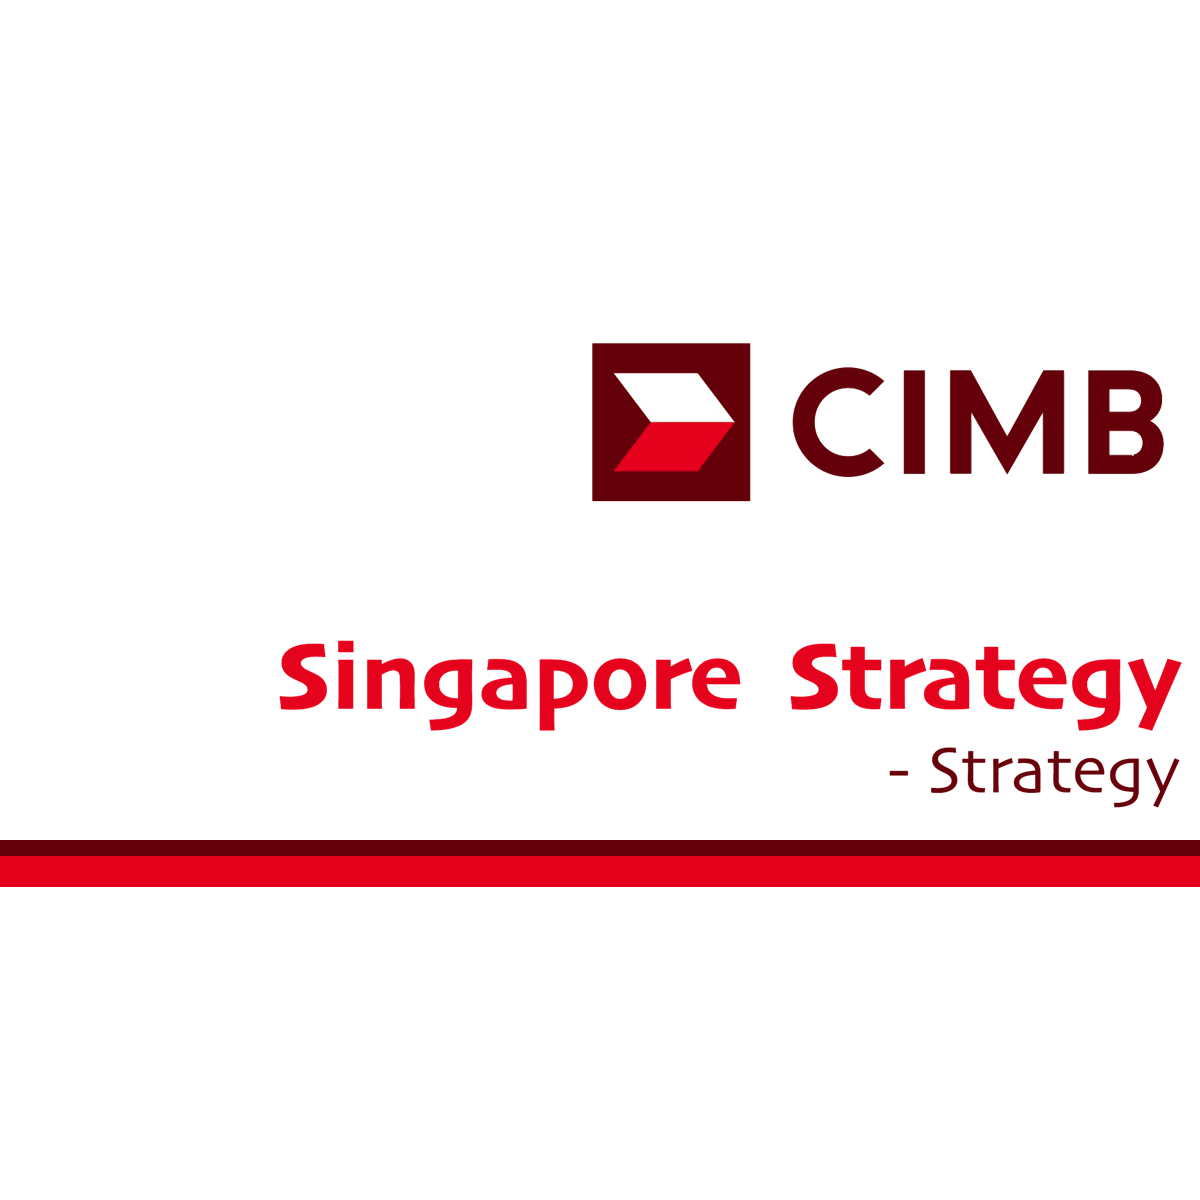 Singapore Strategy - CIMB Research 2016-12-05: Rocky is the new status quo